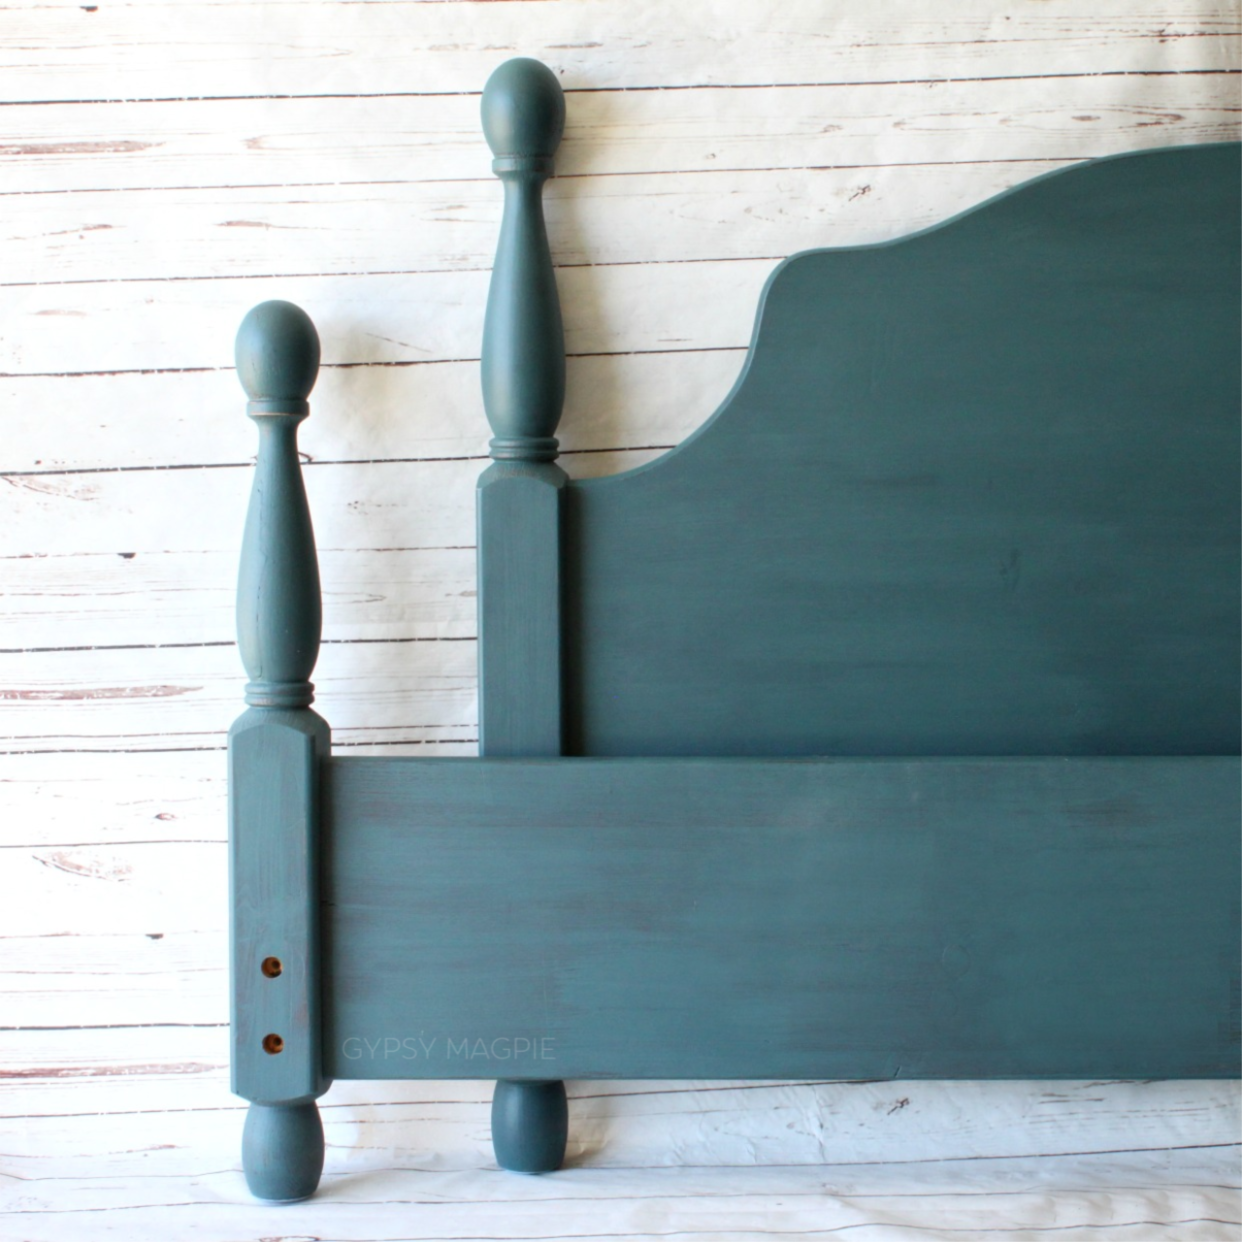 Magnolia Weekend bed frame. So darling! | Gypsy Magpie